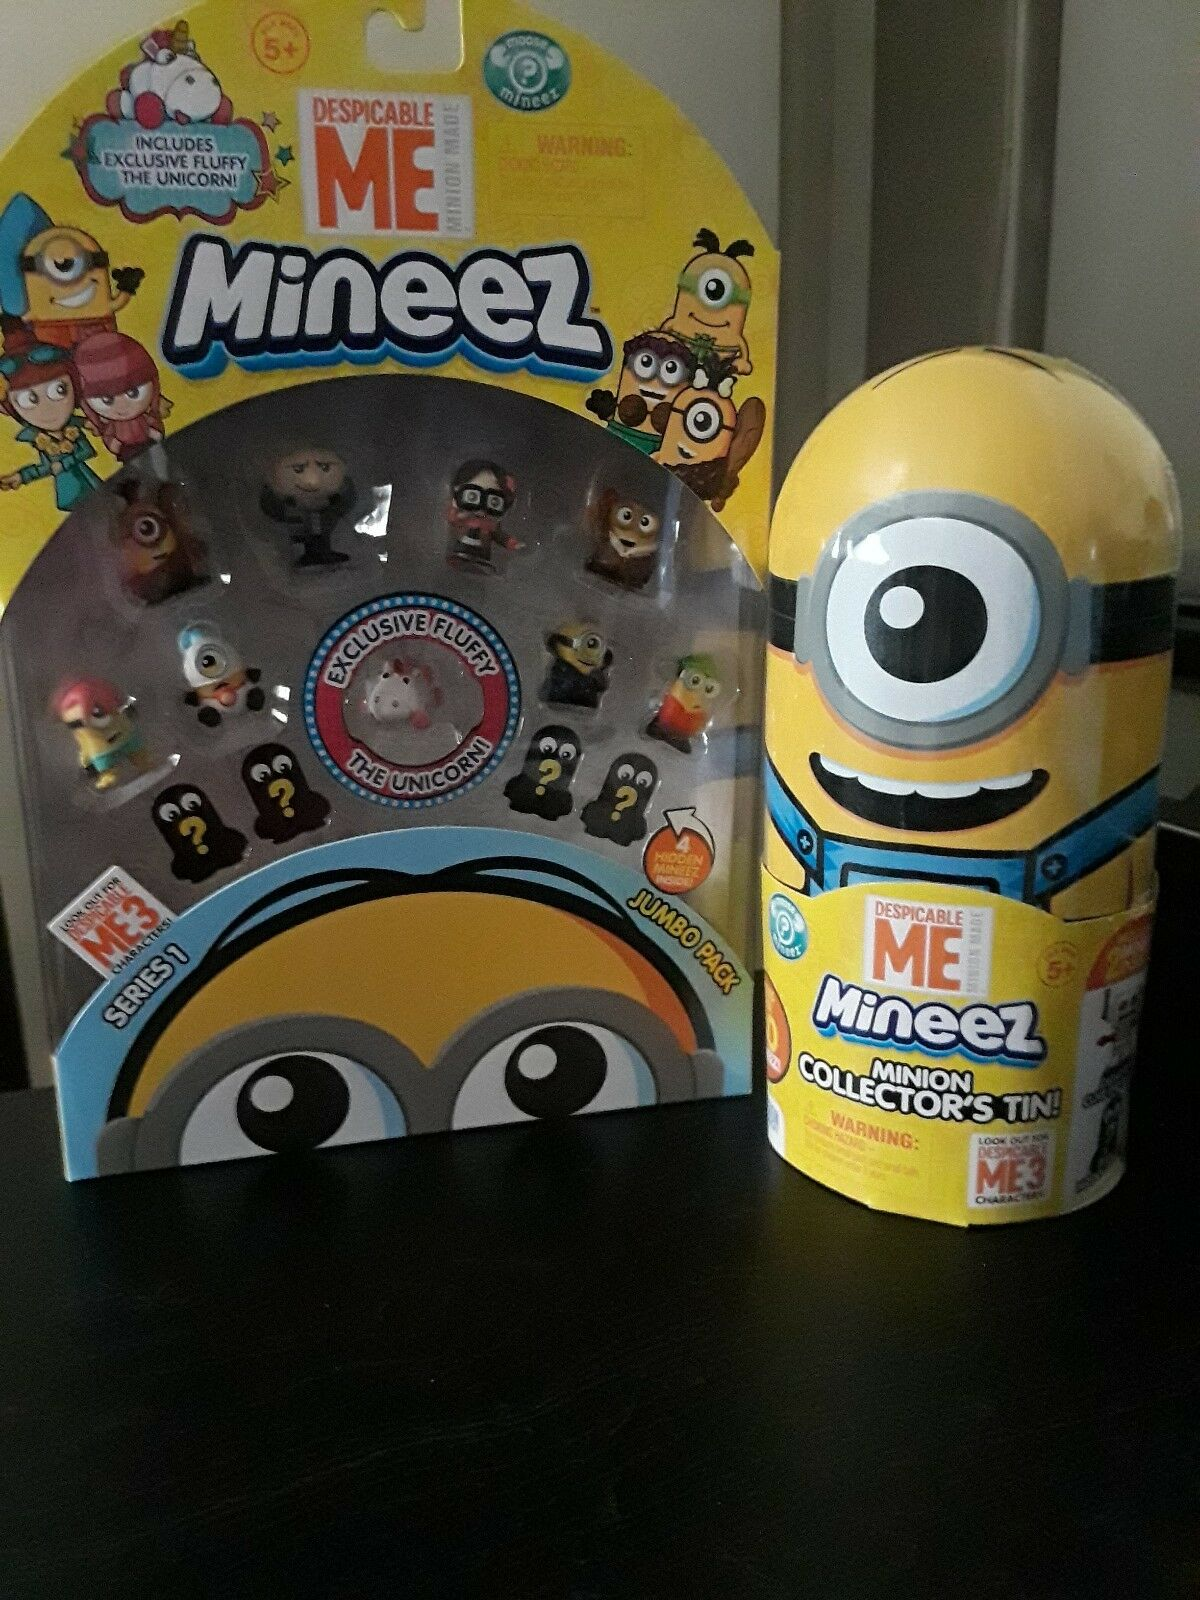 Despicable Me Mineez Series 1 w  exclusive unicorn and Mineez Collectors Tin